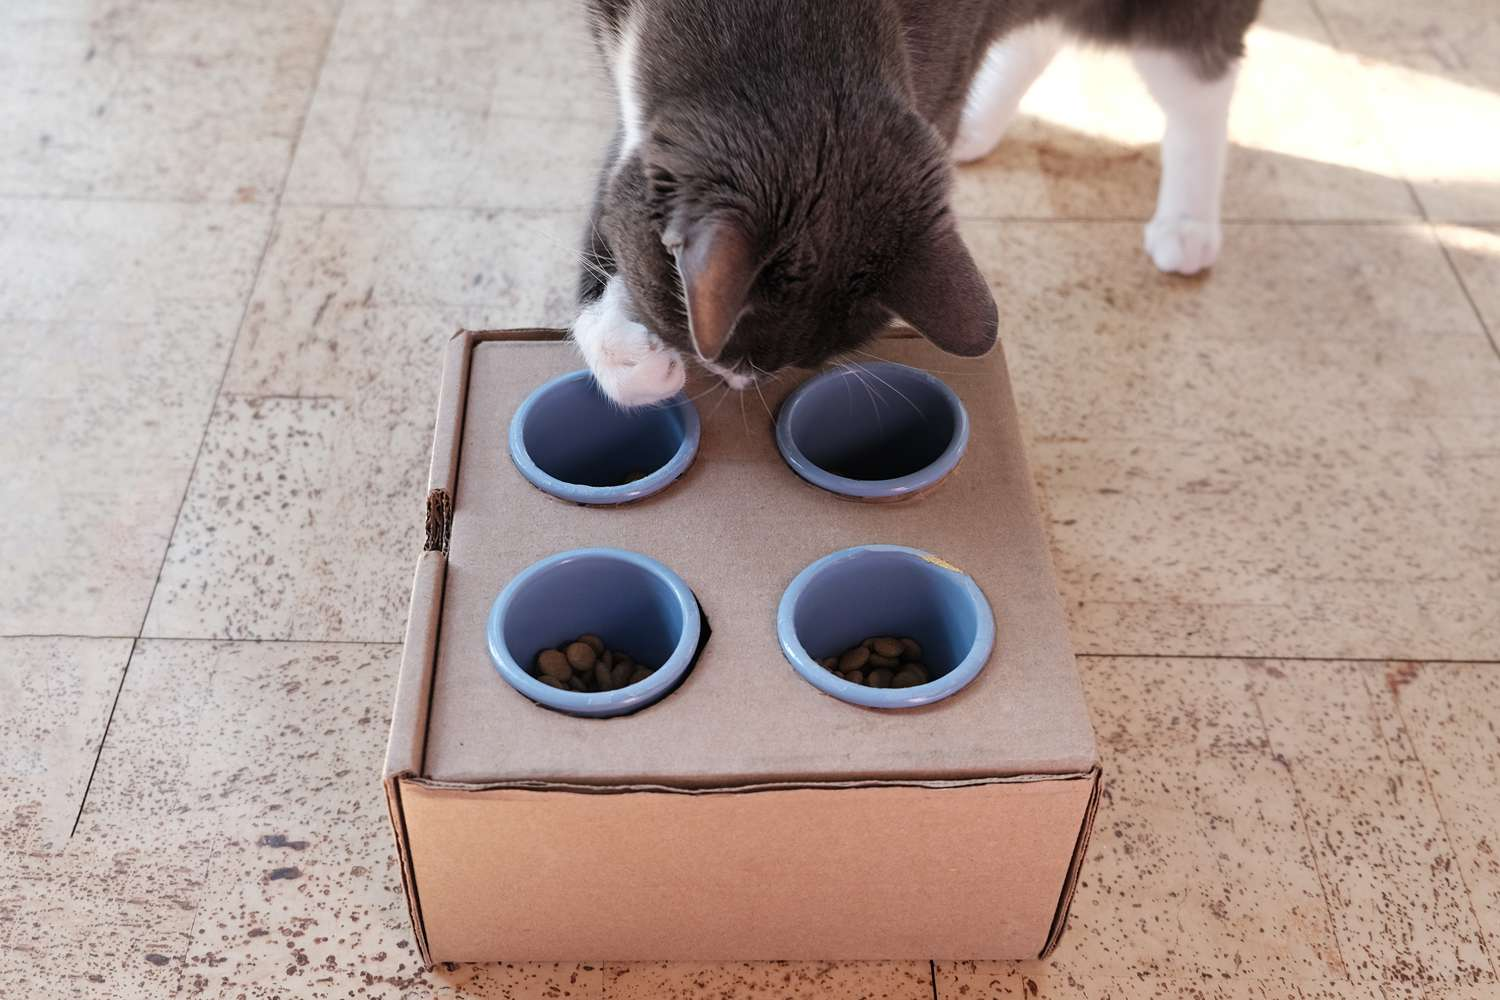 gray and white cat scoops treats with paw out of DIY feeder cardboard box